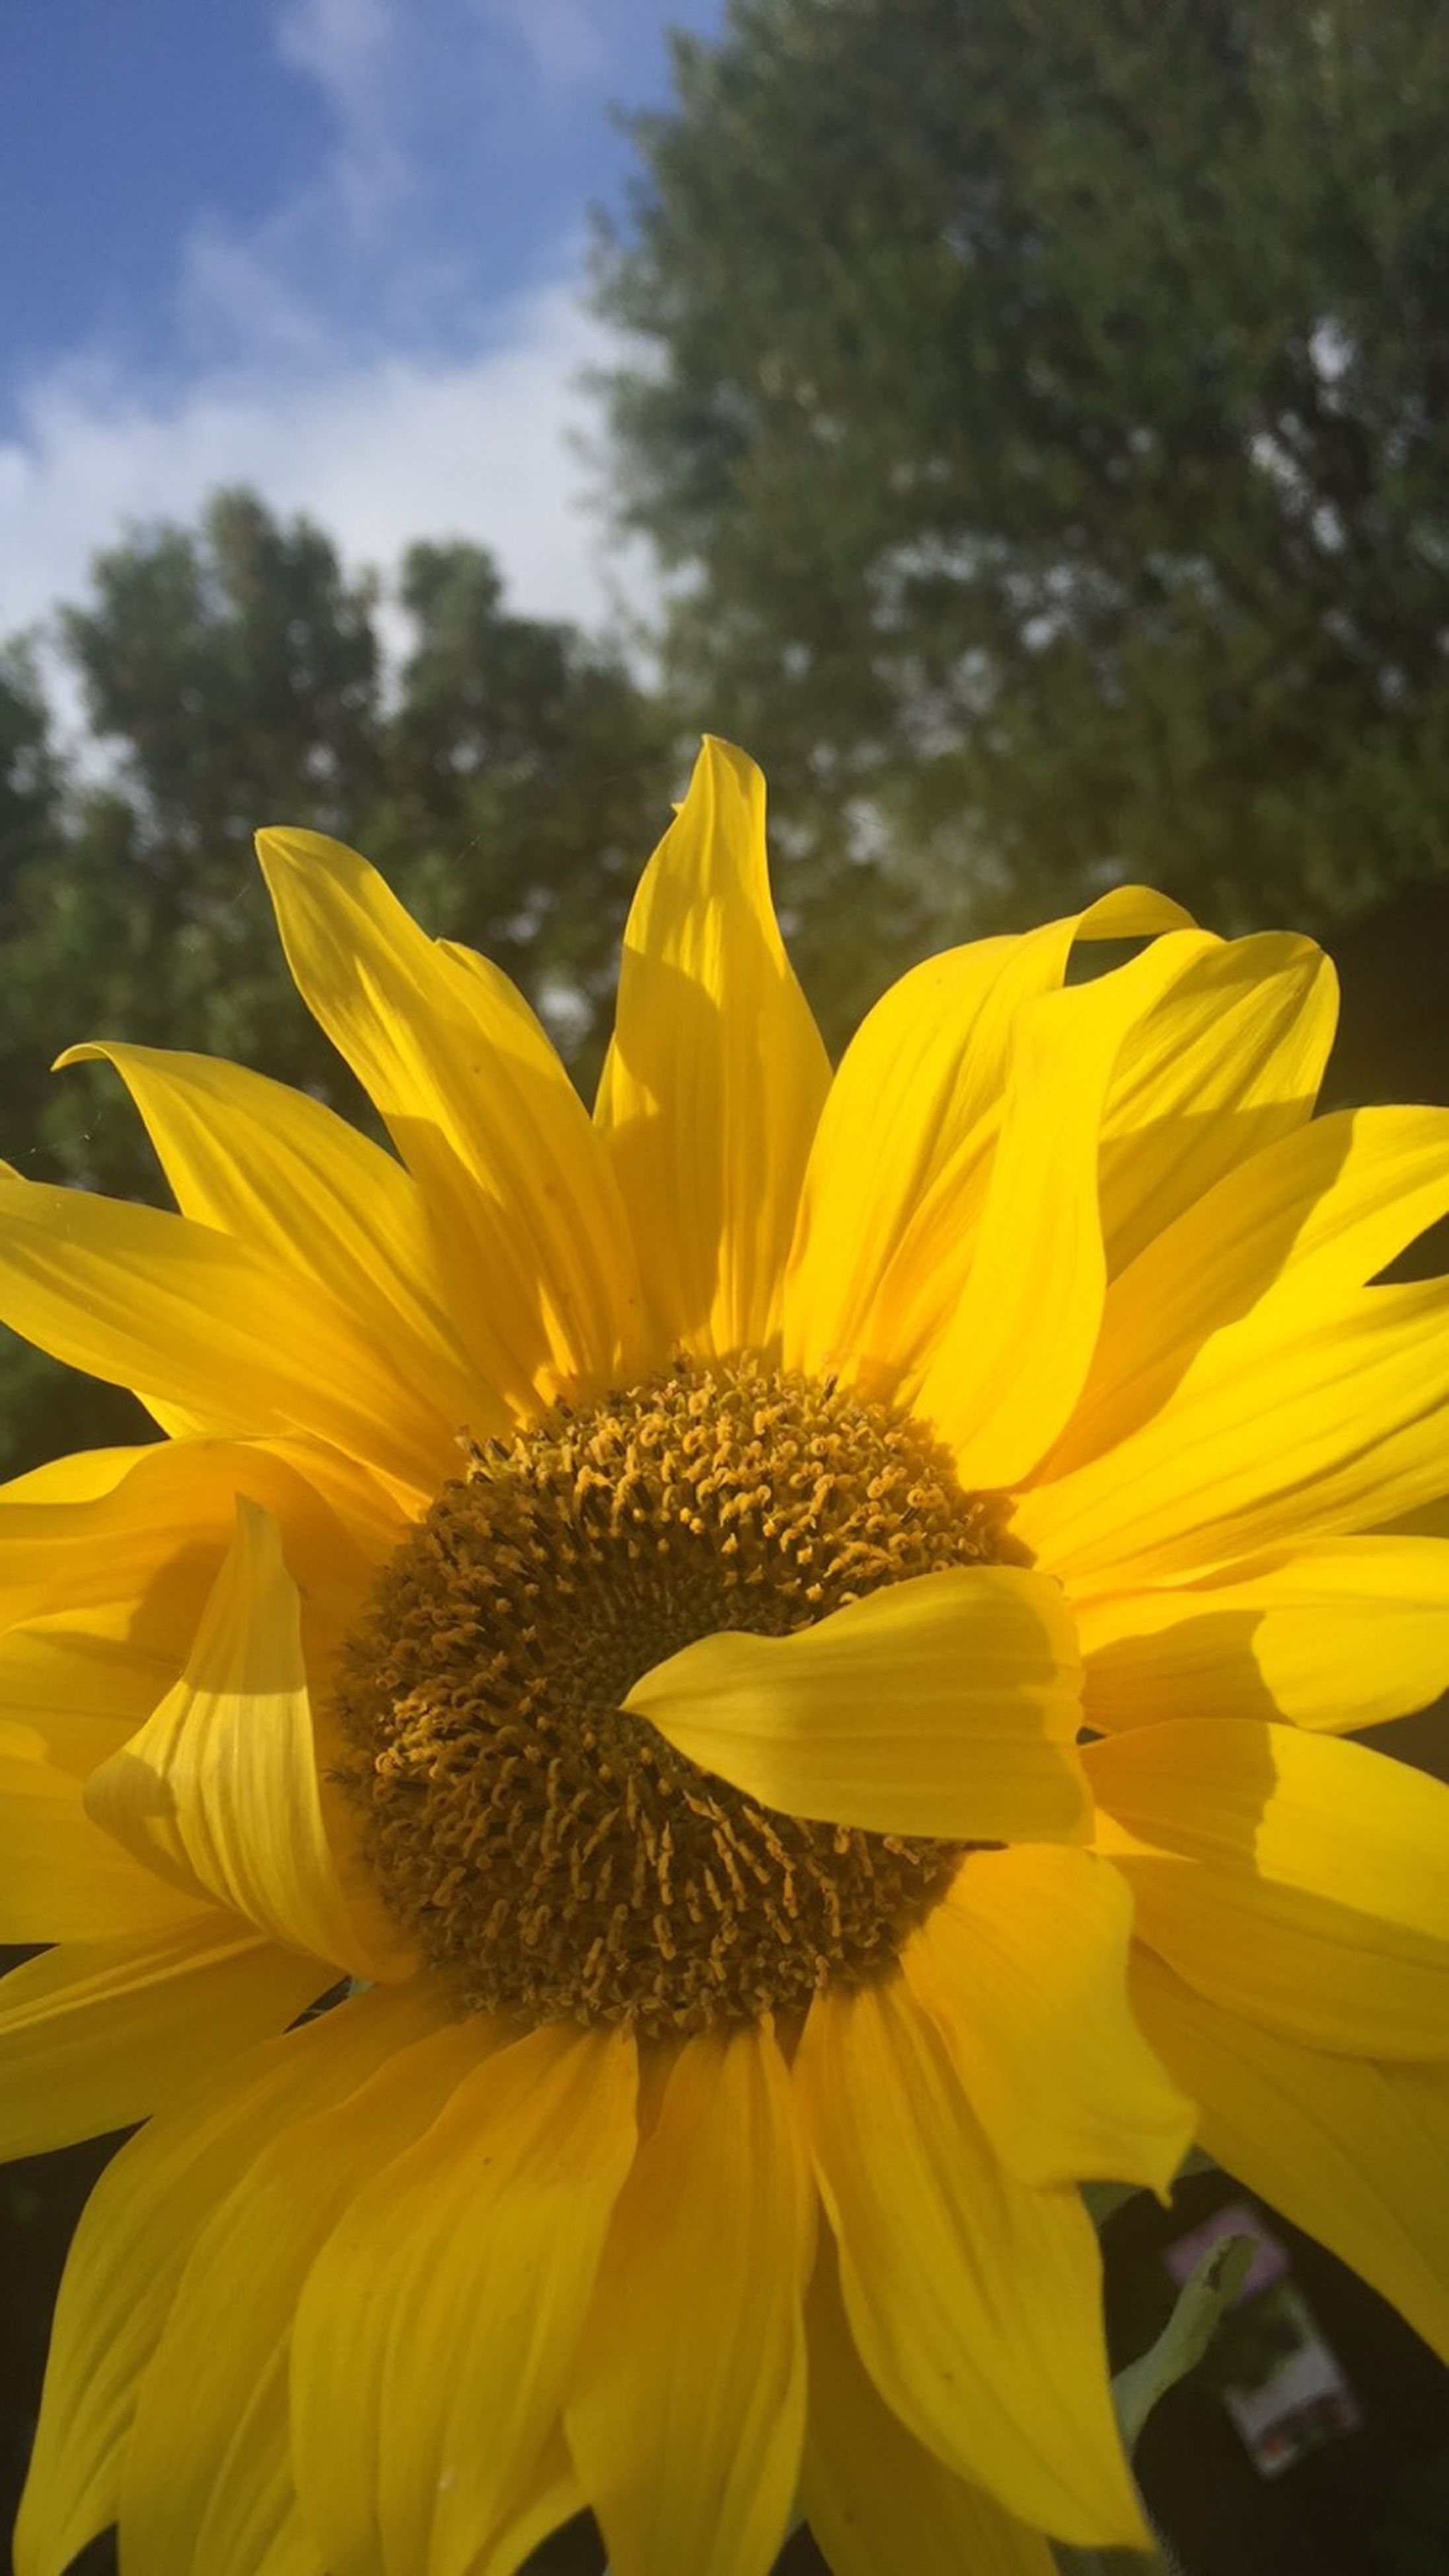 flower, petal, yellow, freshness, flower head, fragility, growth, close-up, pollen, beauty in nature, focus on foreground, blooming, single flower, sunflower, nature, plant, in bloom, day, outdoors, stamen